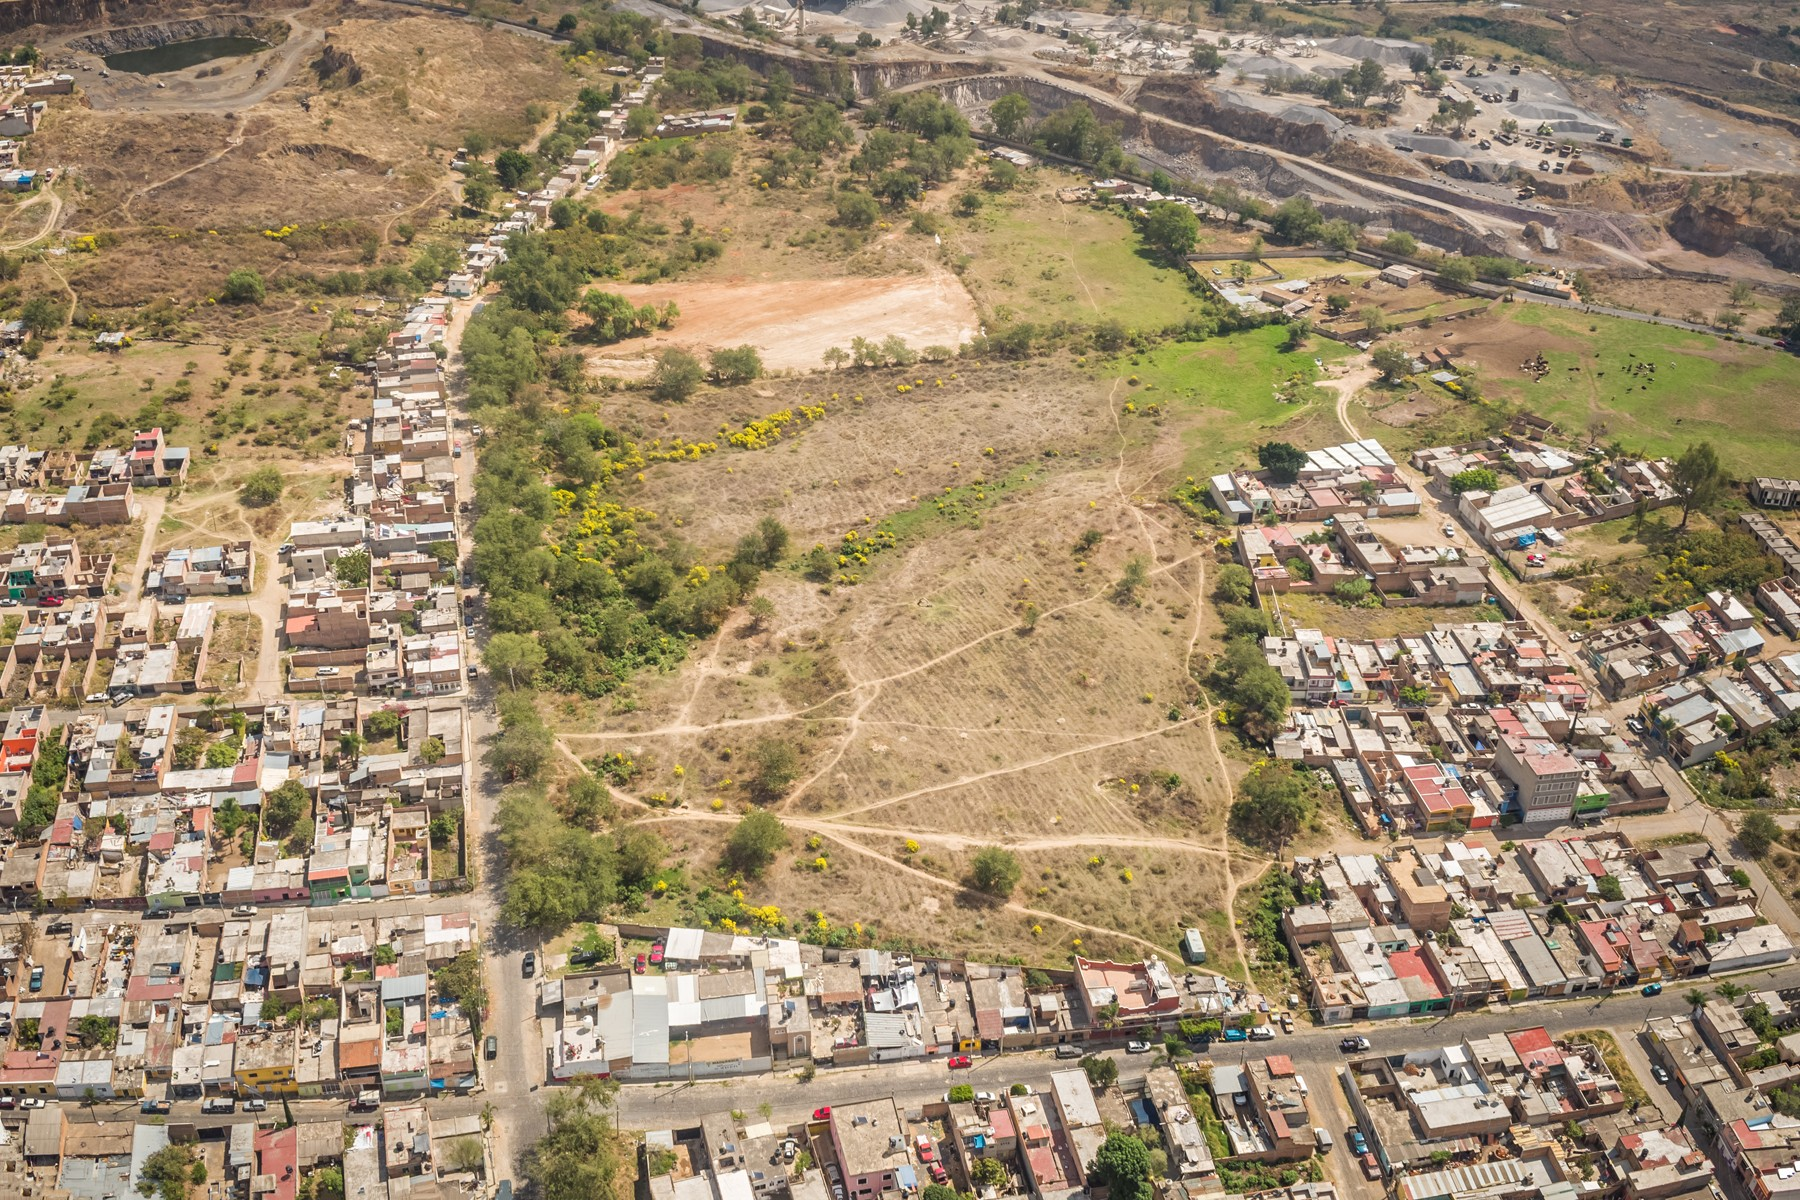 Development Lot H4,  Xicoxochitl, Tonala, Jalisco